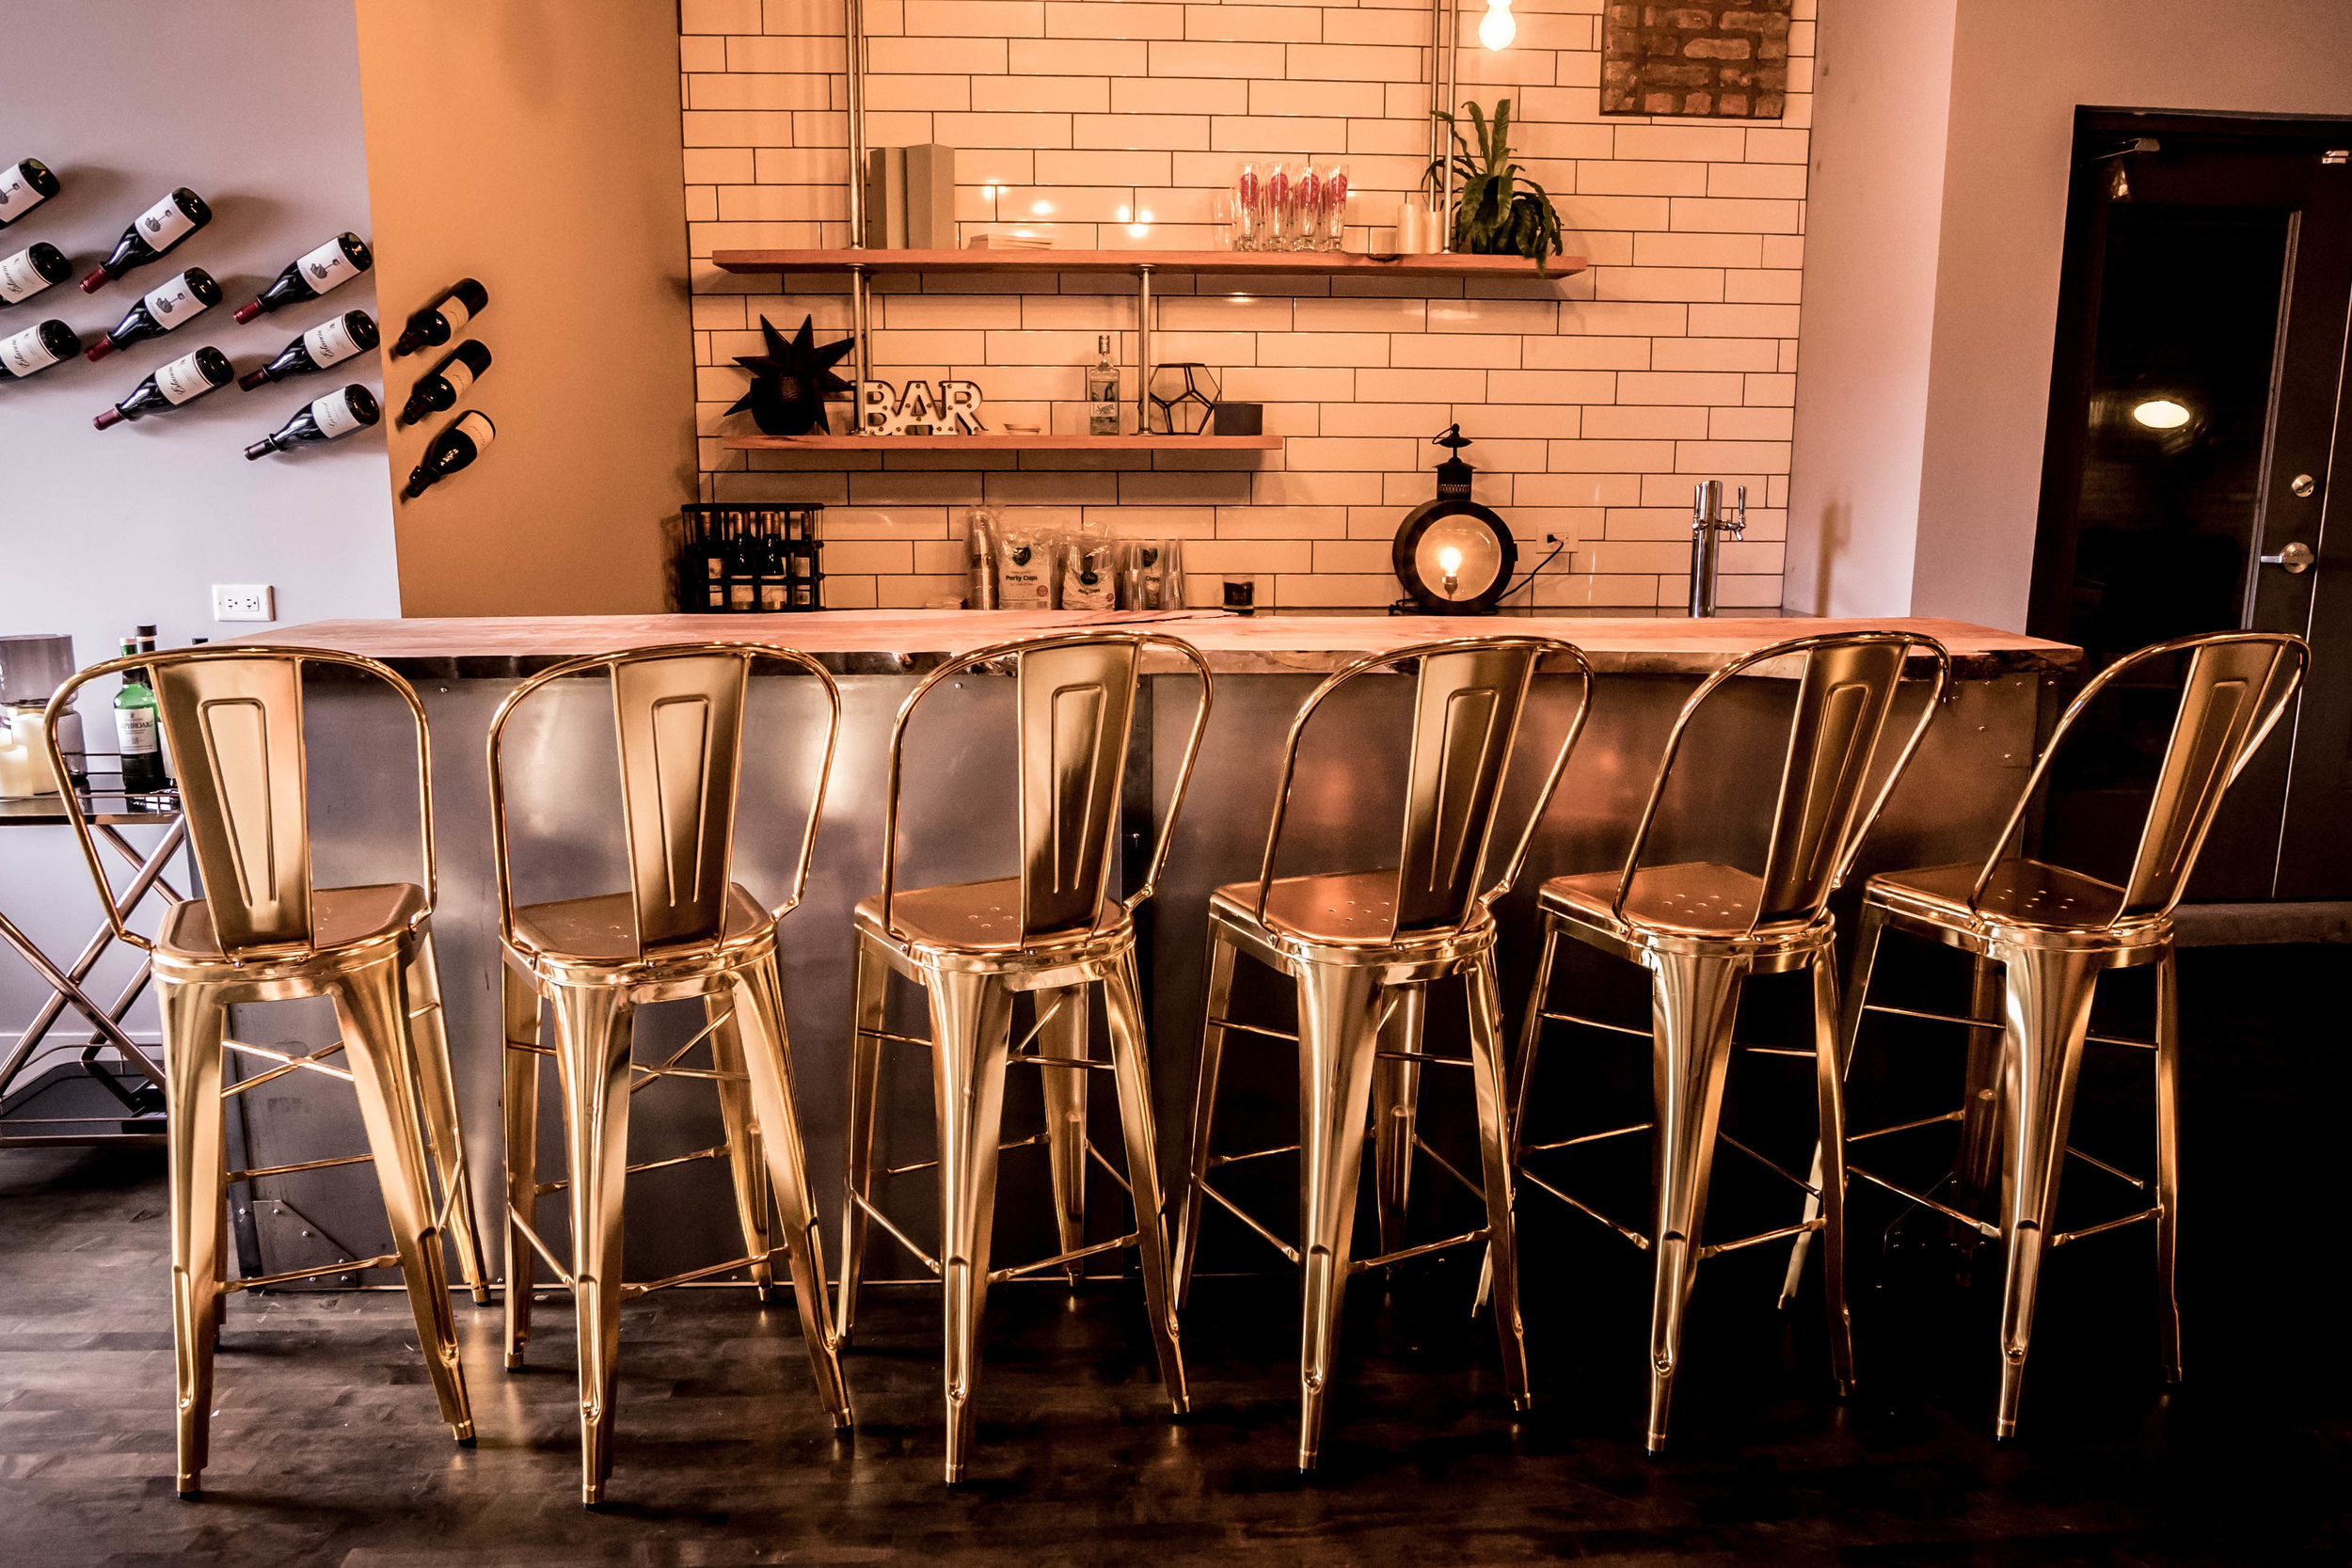 The whole bar has a super industrial feel with metal conduit shelves, a raw wood slab bar top, and metal cladding around the entire base of the bar. The golden metallic chairs demand a second glance as well.